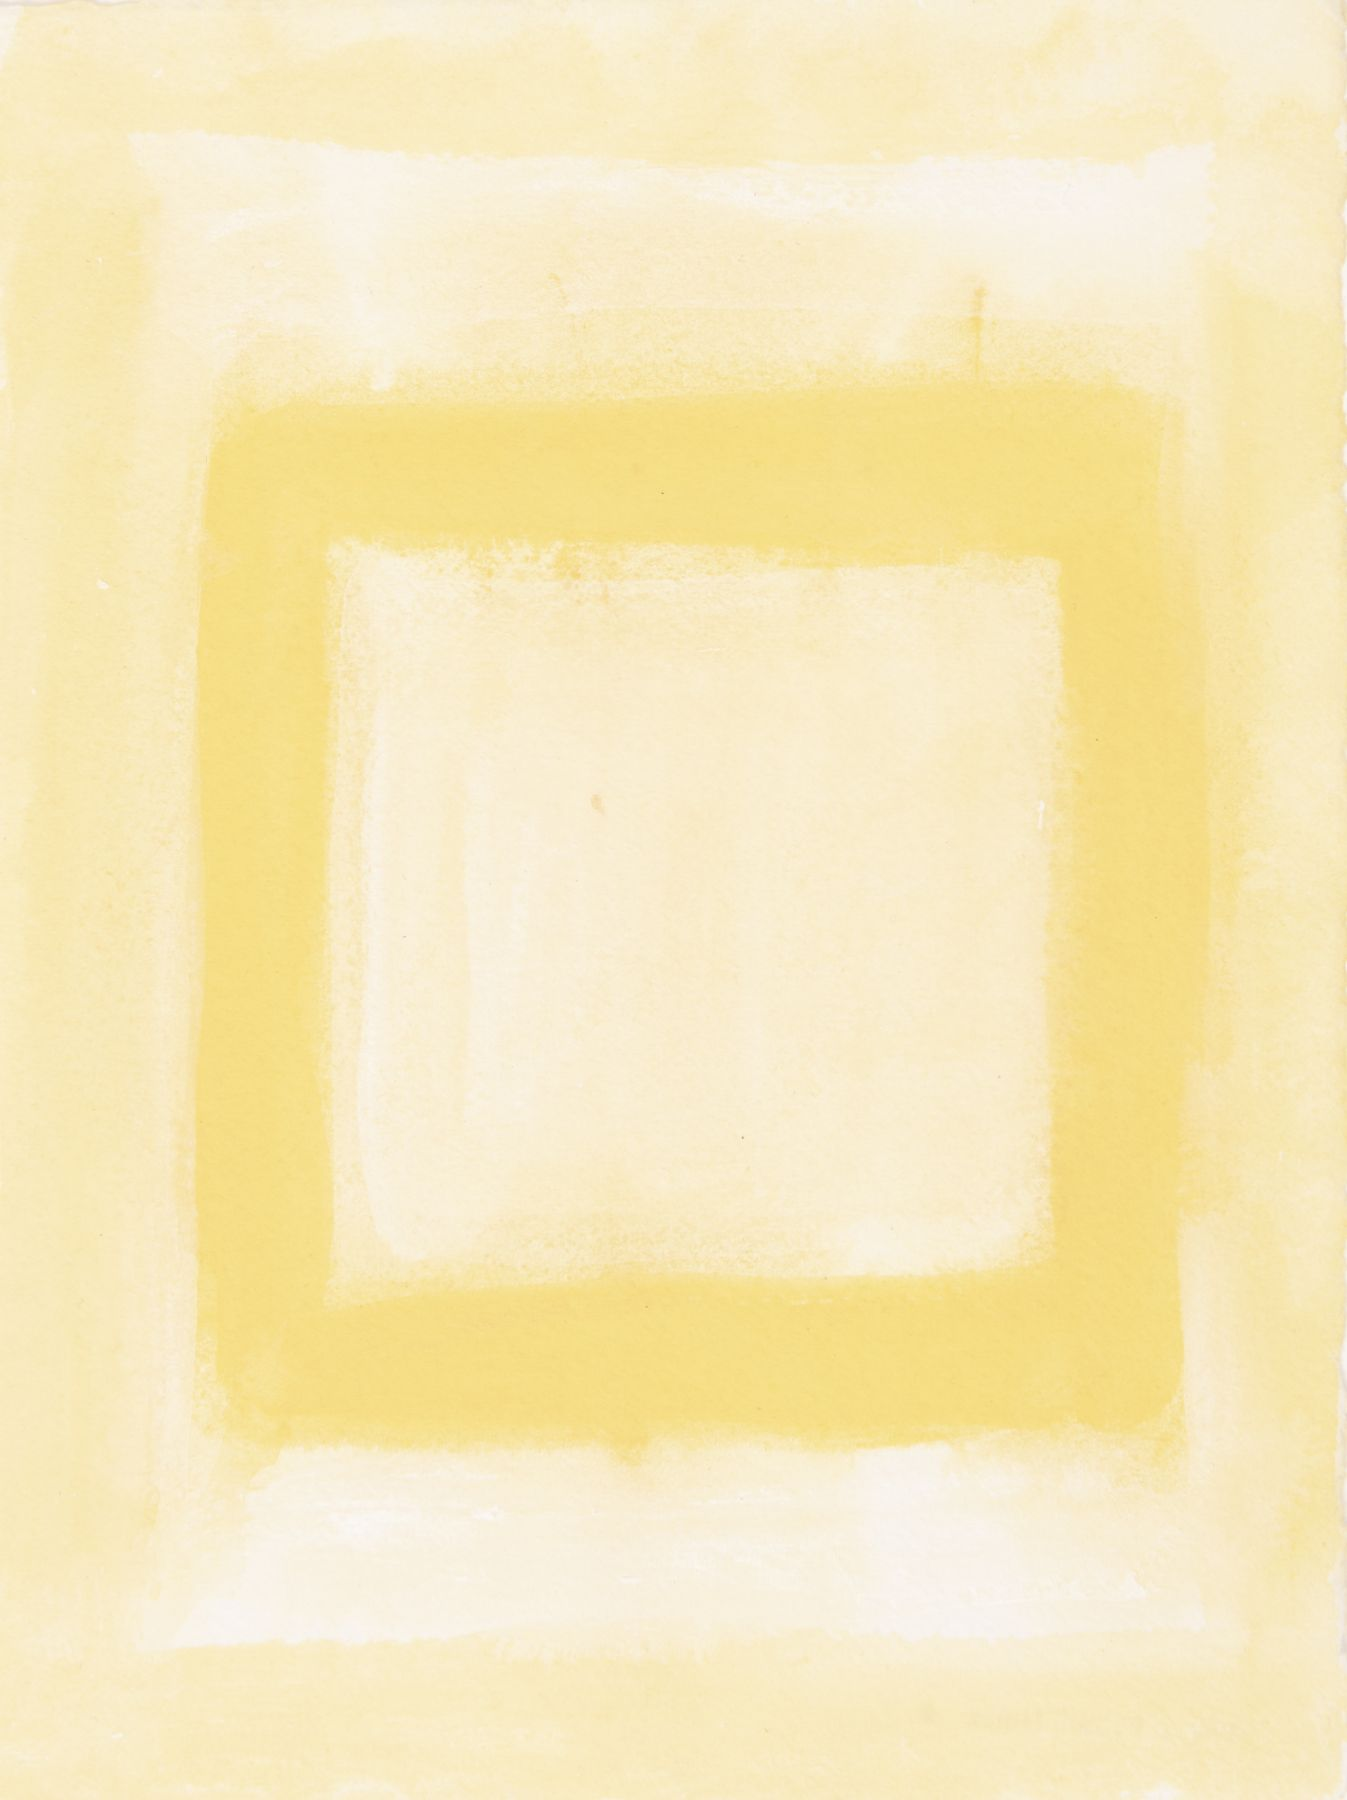 Felrath Hines, Untitled,  Watercolor on paper,  7.75 x 6 inches, Unsigned. Soft pastel yellow background with outlined yellow square in the center of the frame. Felrath Hines worked to create universal visual idioms from a place of complex personal experience. His figurative and cubist-style artwork morphed into soft-edged organic abstracts as he grappled with hues in his chosen oil medium.